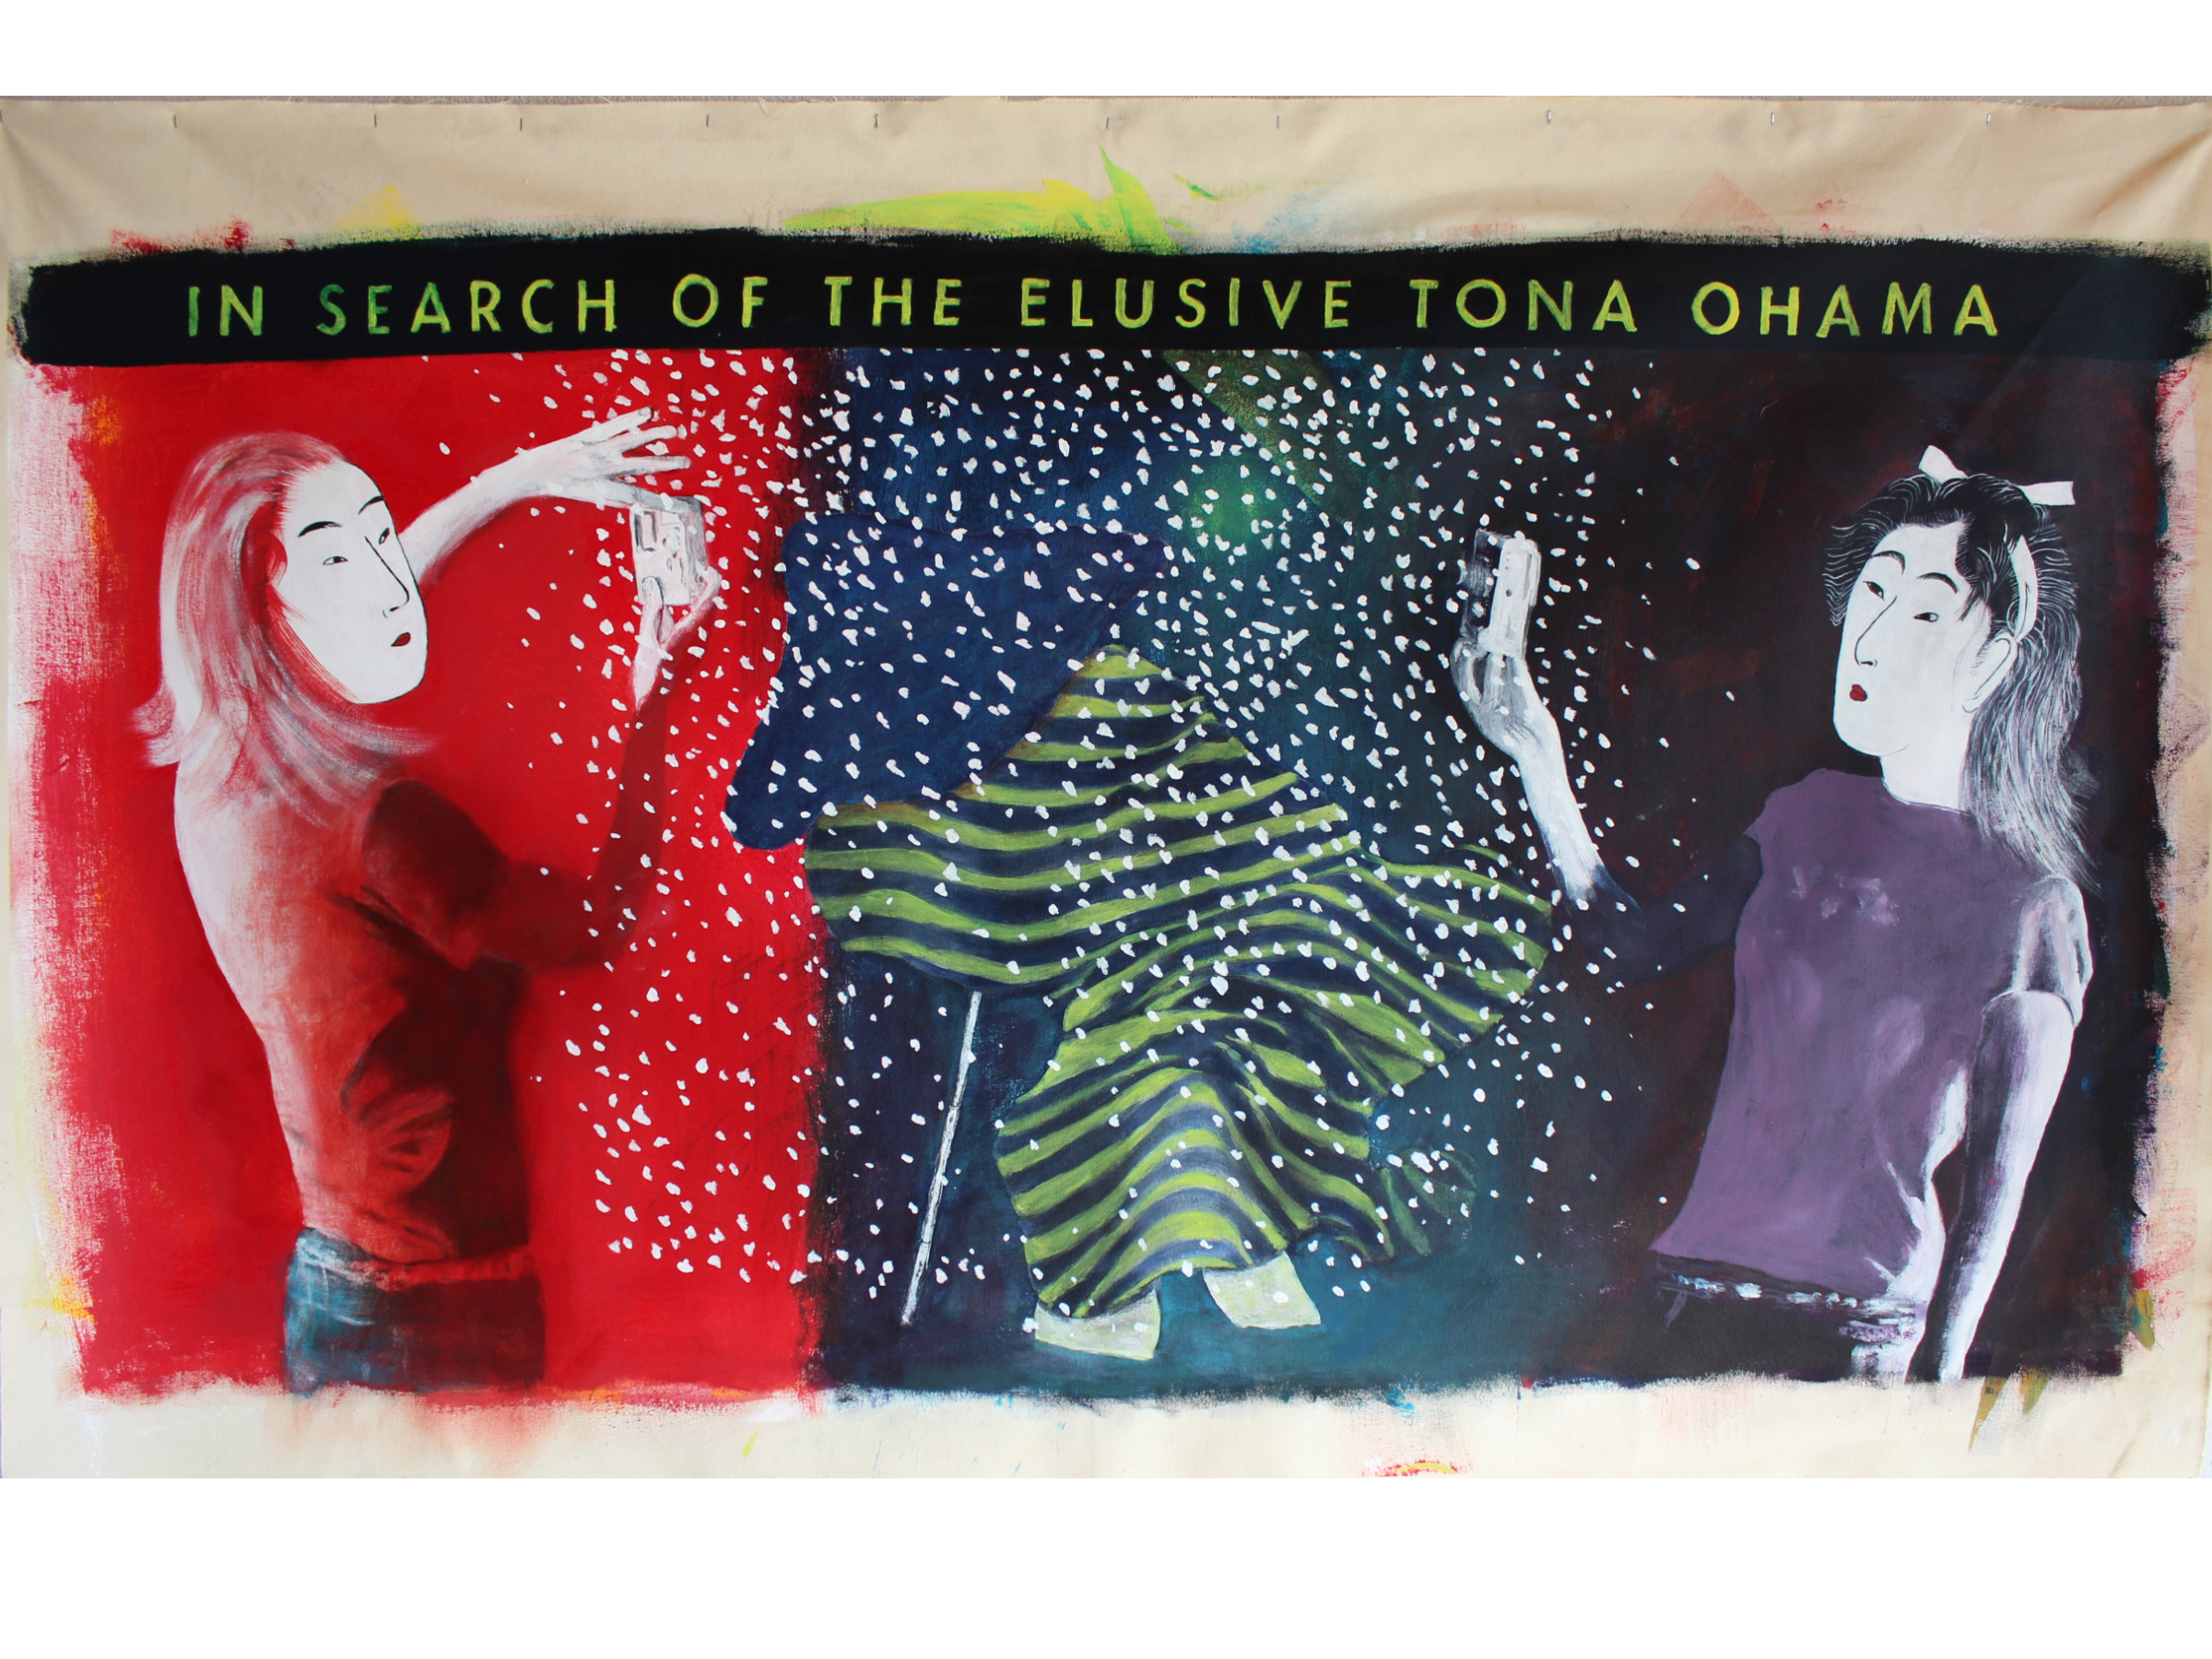 In Search of the Elusive Tona Ohama